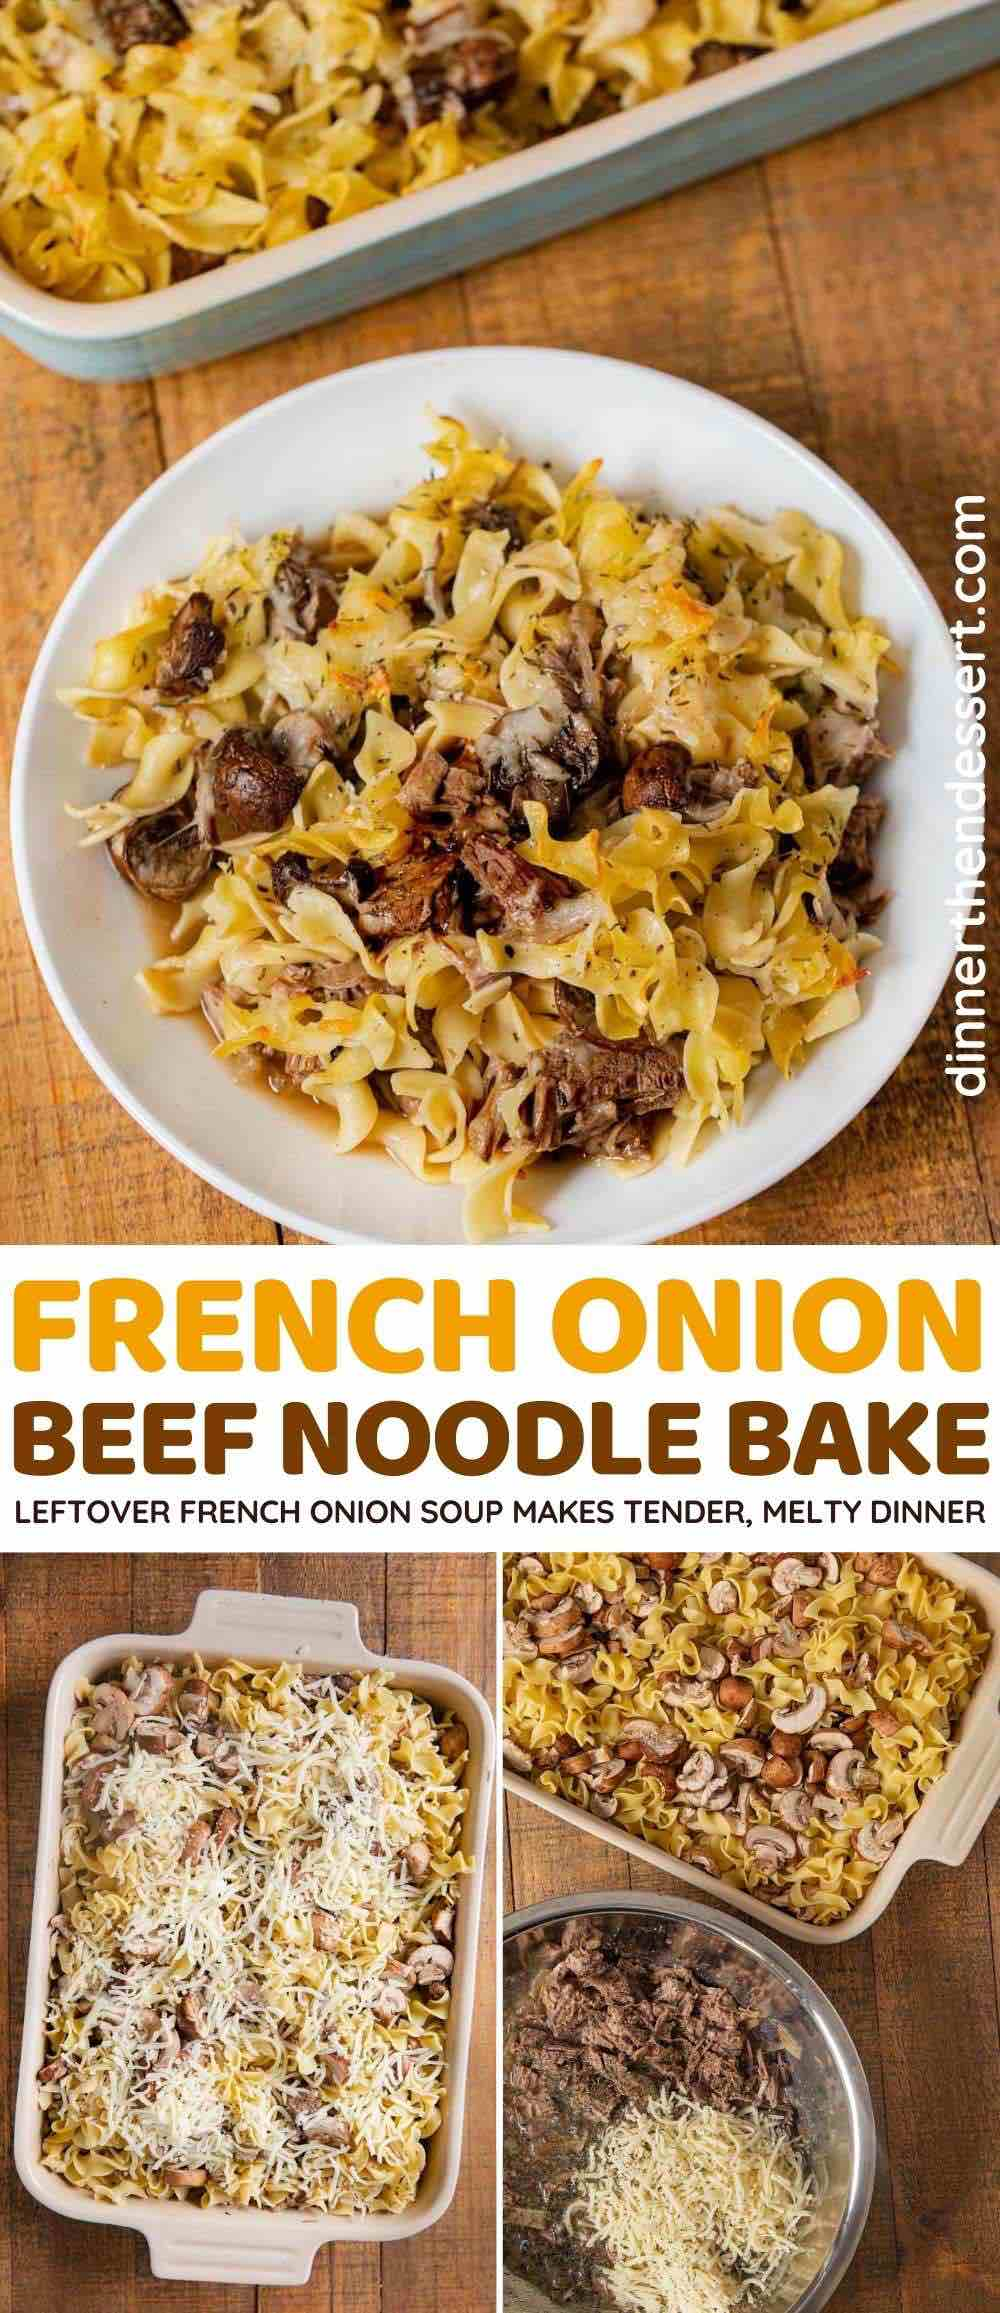 Leftover French Onion Beef Noodle Bake